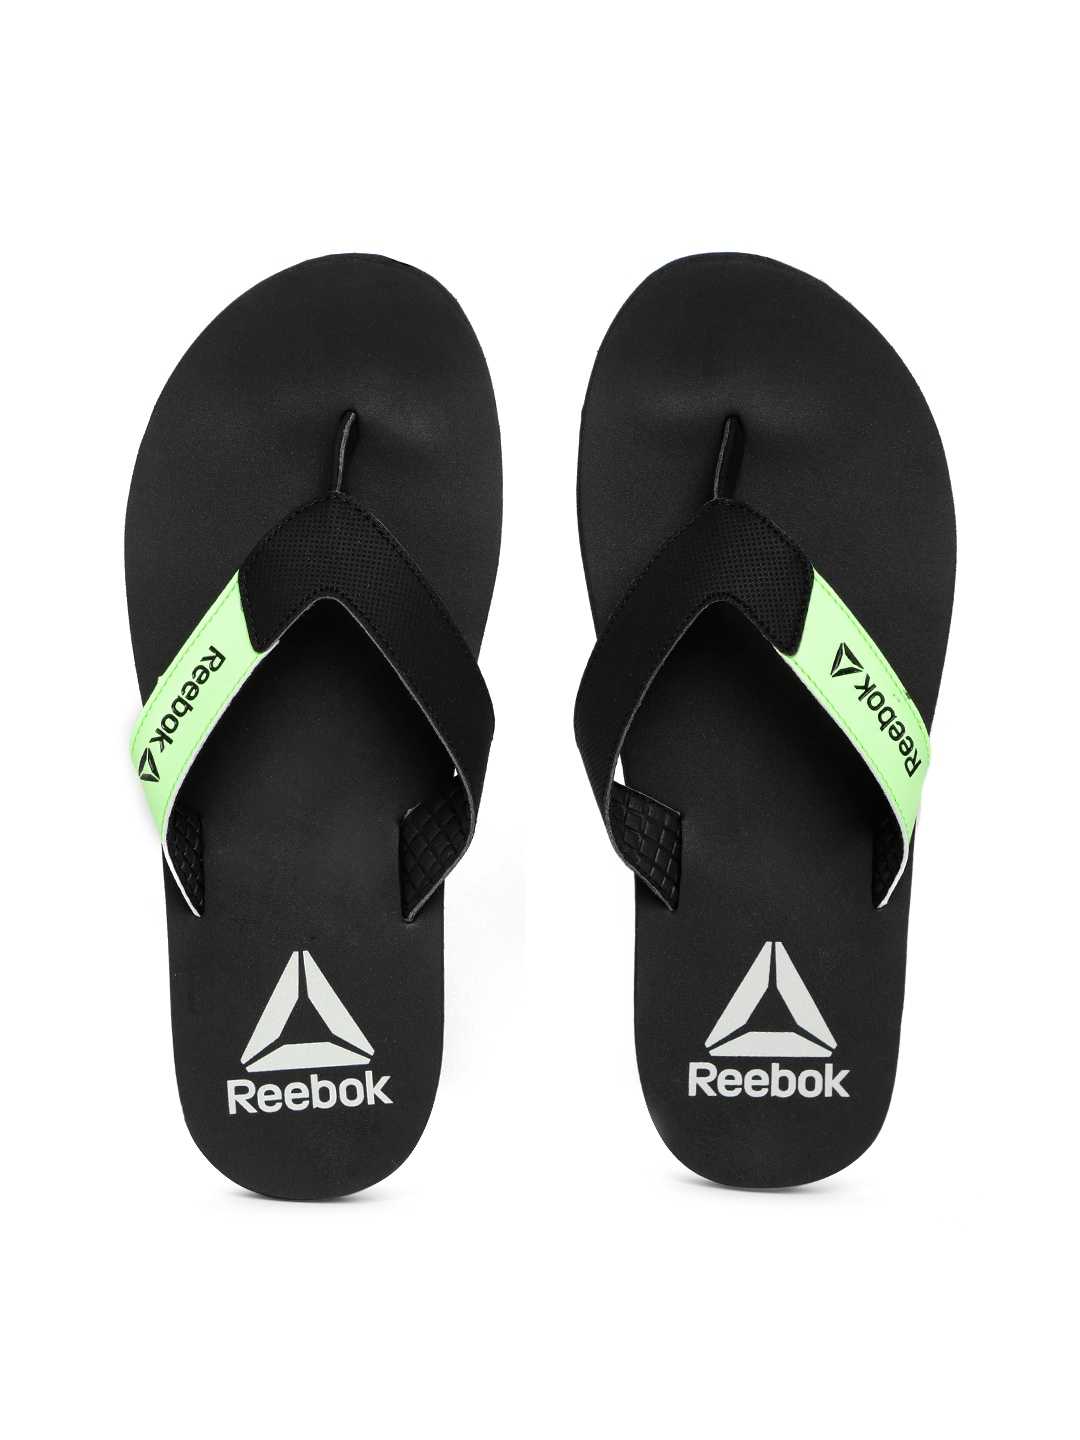 214c75ba0dbd4 Men Sports Reebok Flip Flops - Buy Men Sports Reebok Flip Flops online in  India